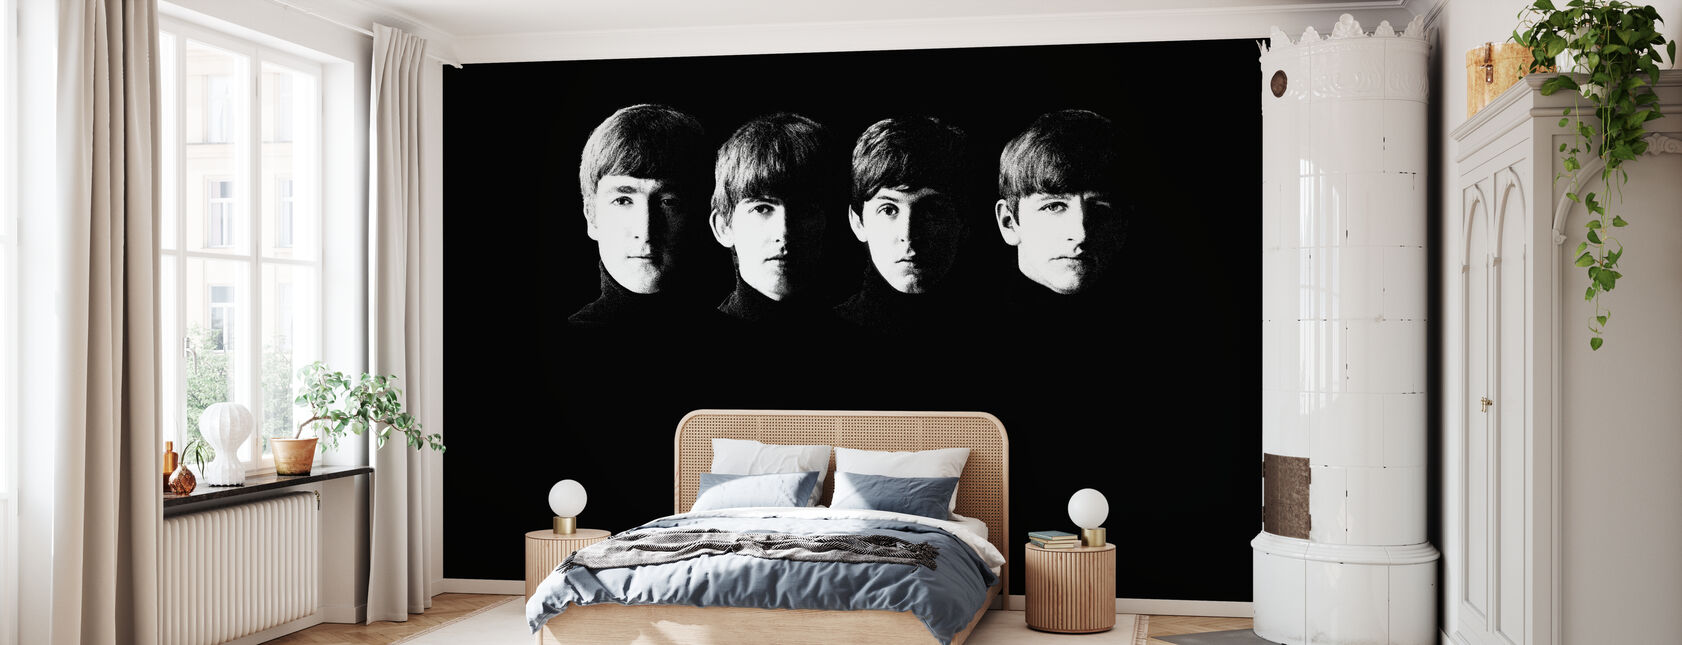 Beatles - Korrelig - Behang - Slaapkamer